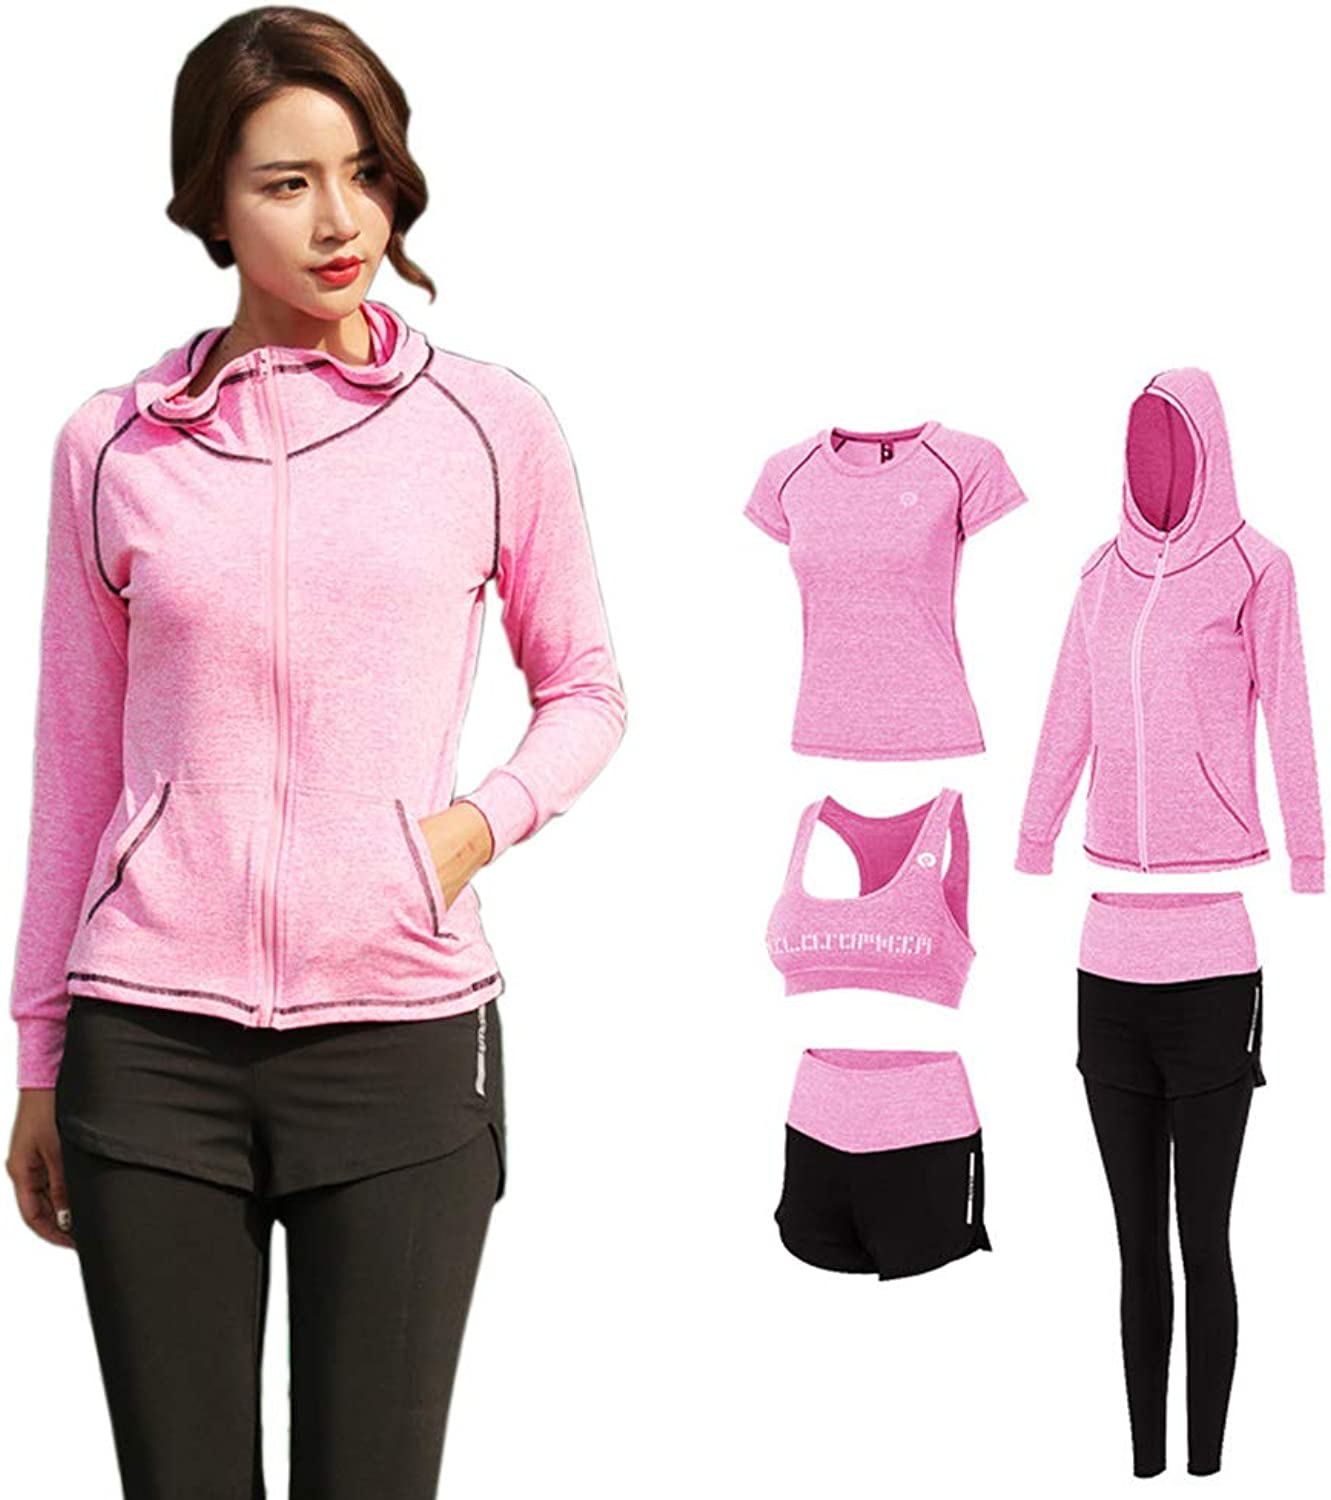 Women's Yoga Clothing Suit, Sports Outdoor Running Slim Jacket Fitness Clothes FivePiece Suit,XL